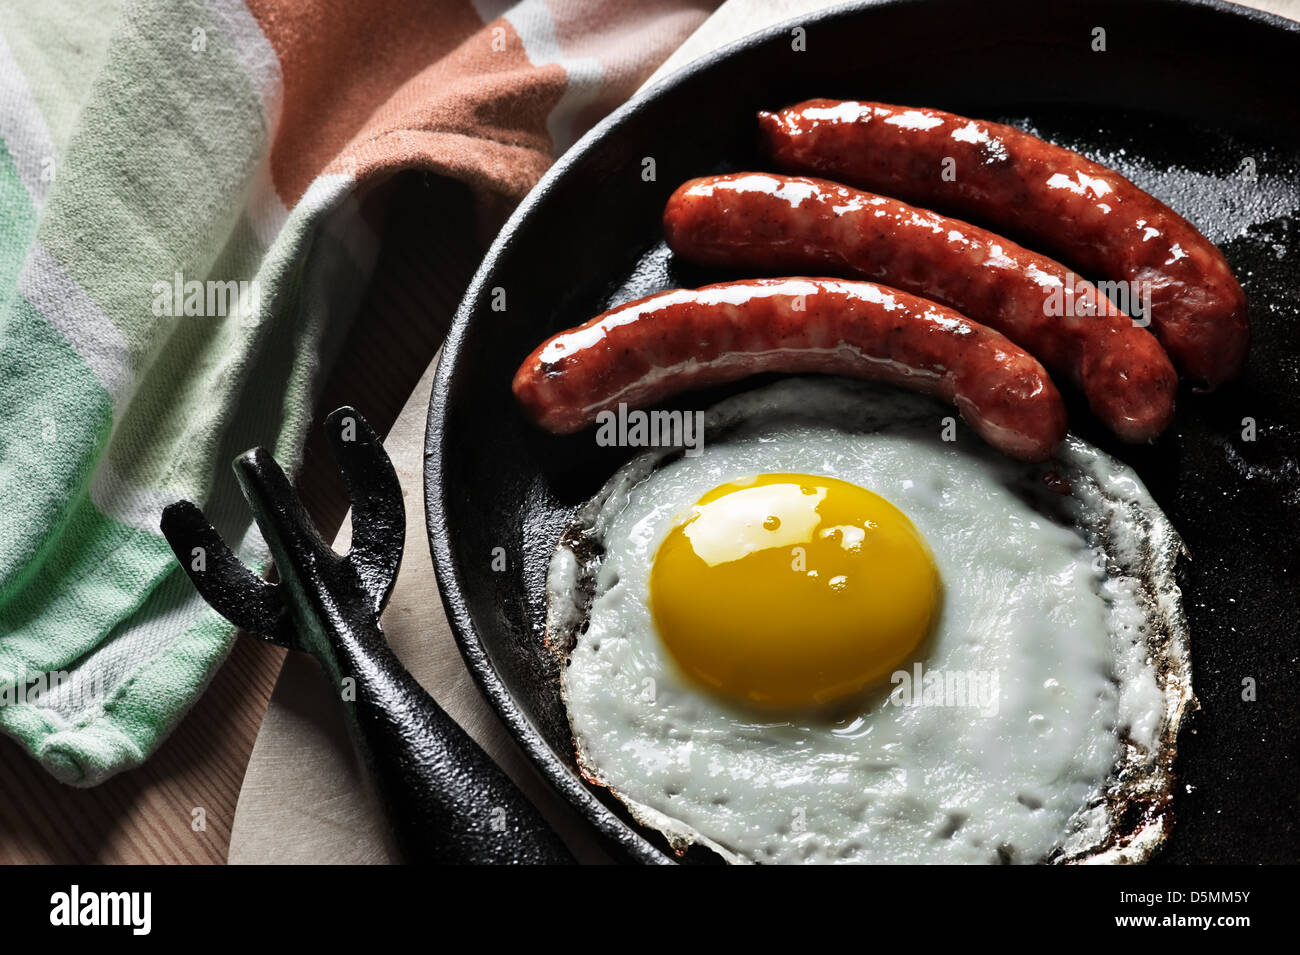 breakfast with eggs and sausage - Stock Image